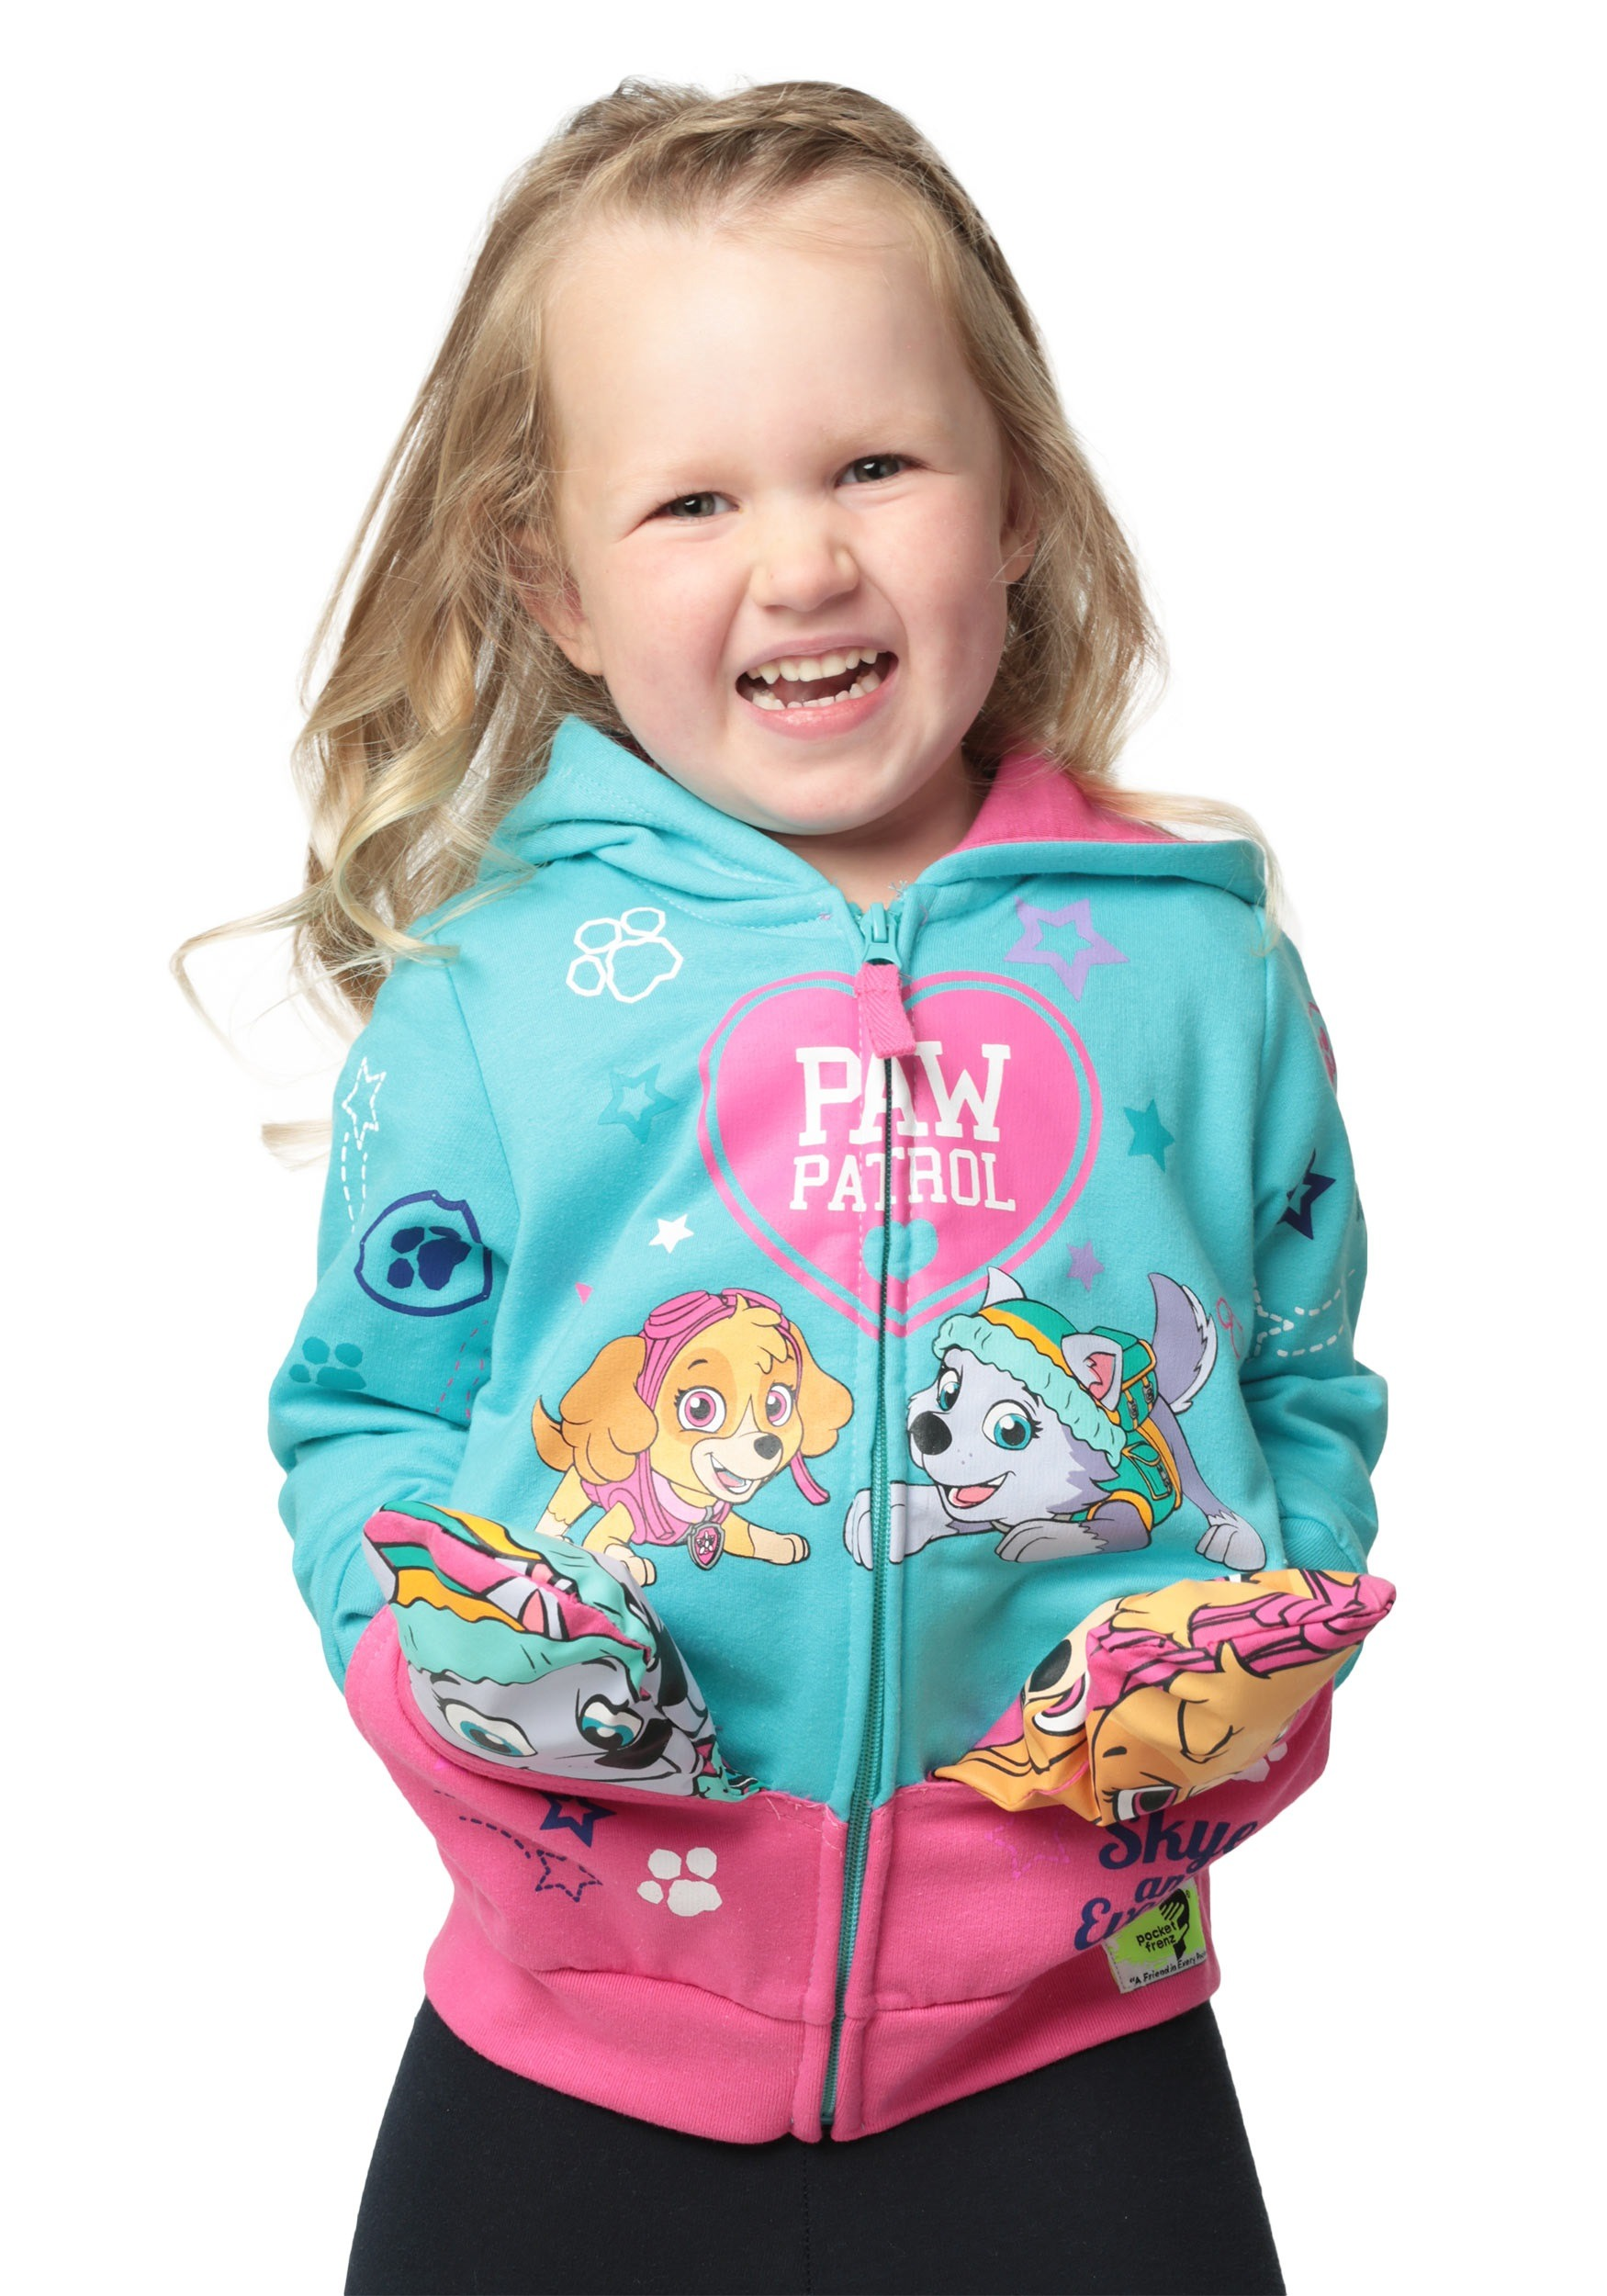 Support a love for outdoor adventure from the start with warm and cozy toddler outdoor clothing like jackets, hoodies and accessories by The North Face.